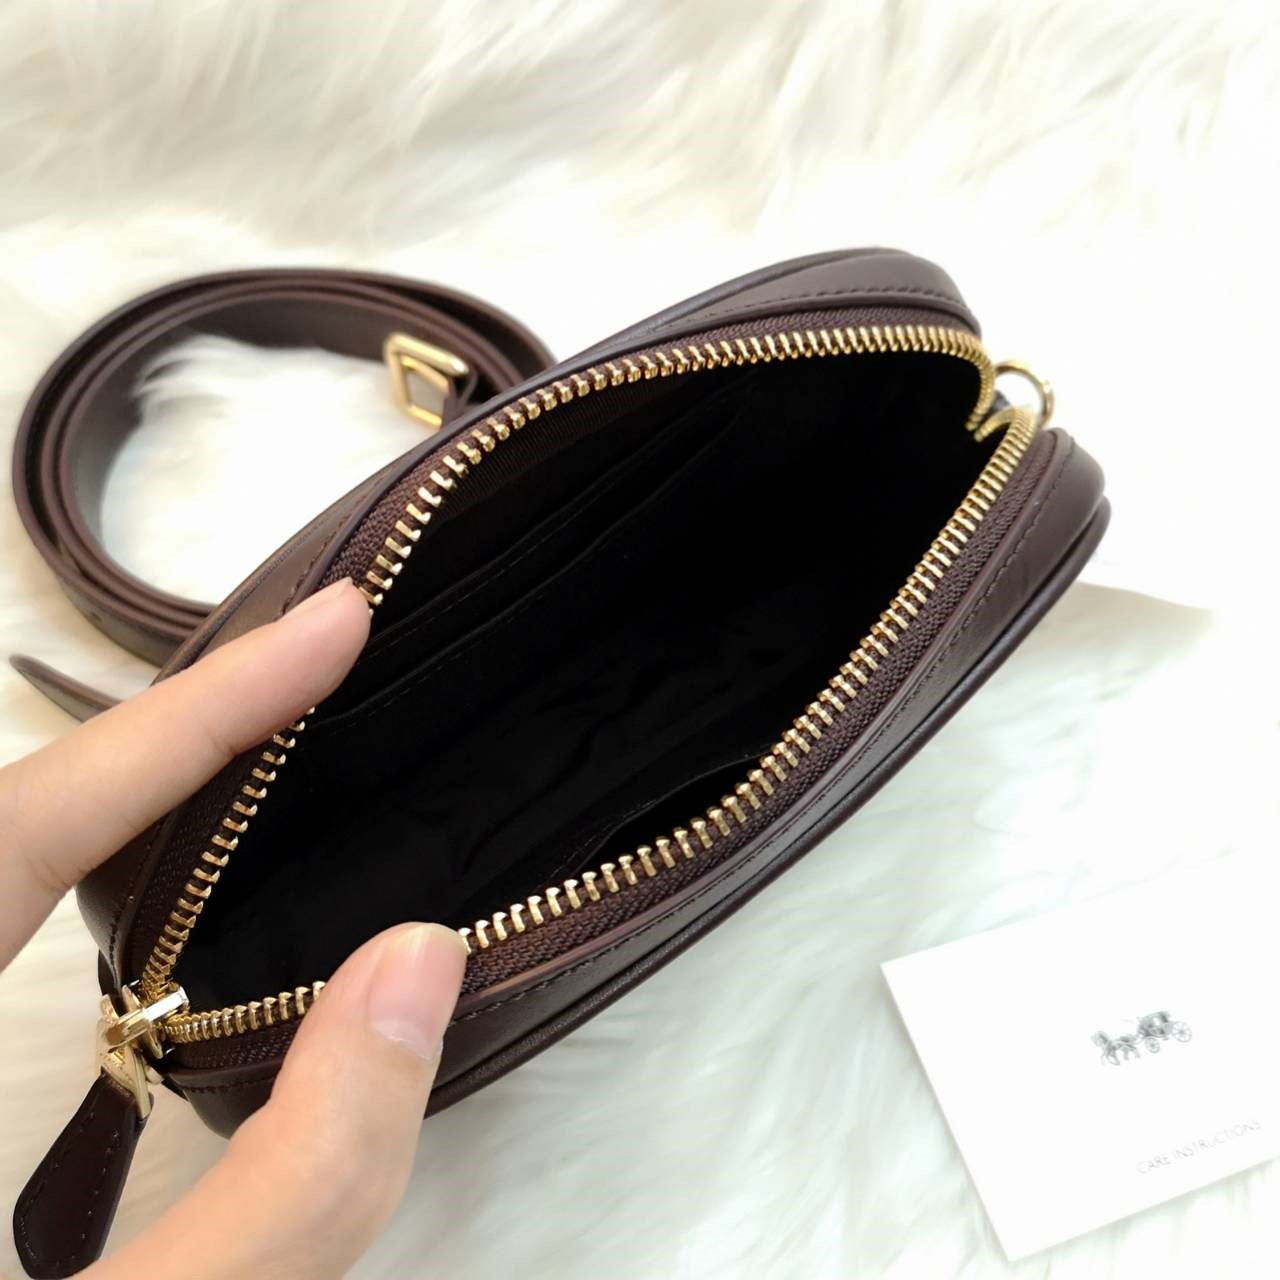 dd2aeae7f0a8 COACH F38678 CONVERTIBLE BELT BAG WITH QUILTING - Little costume ...